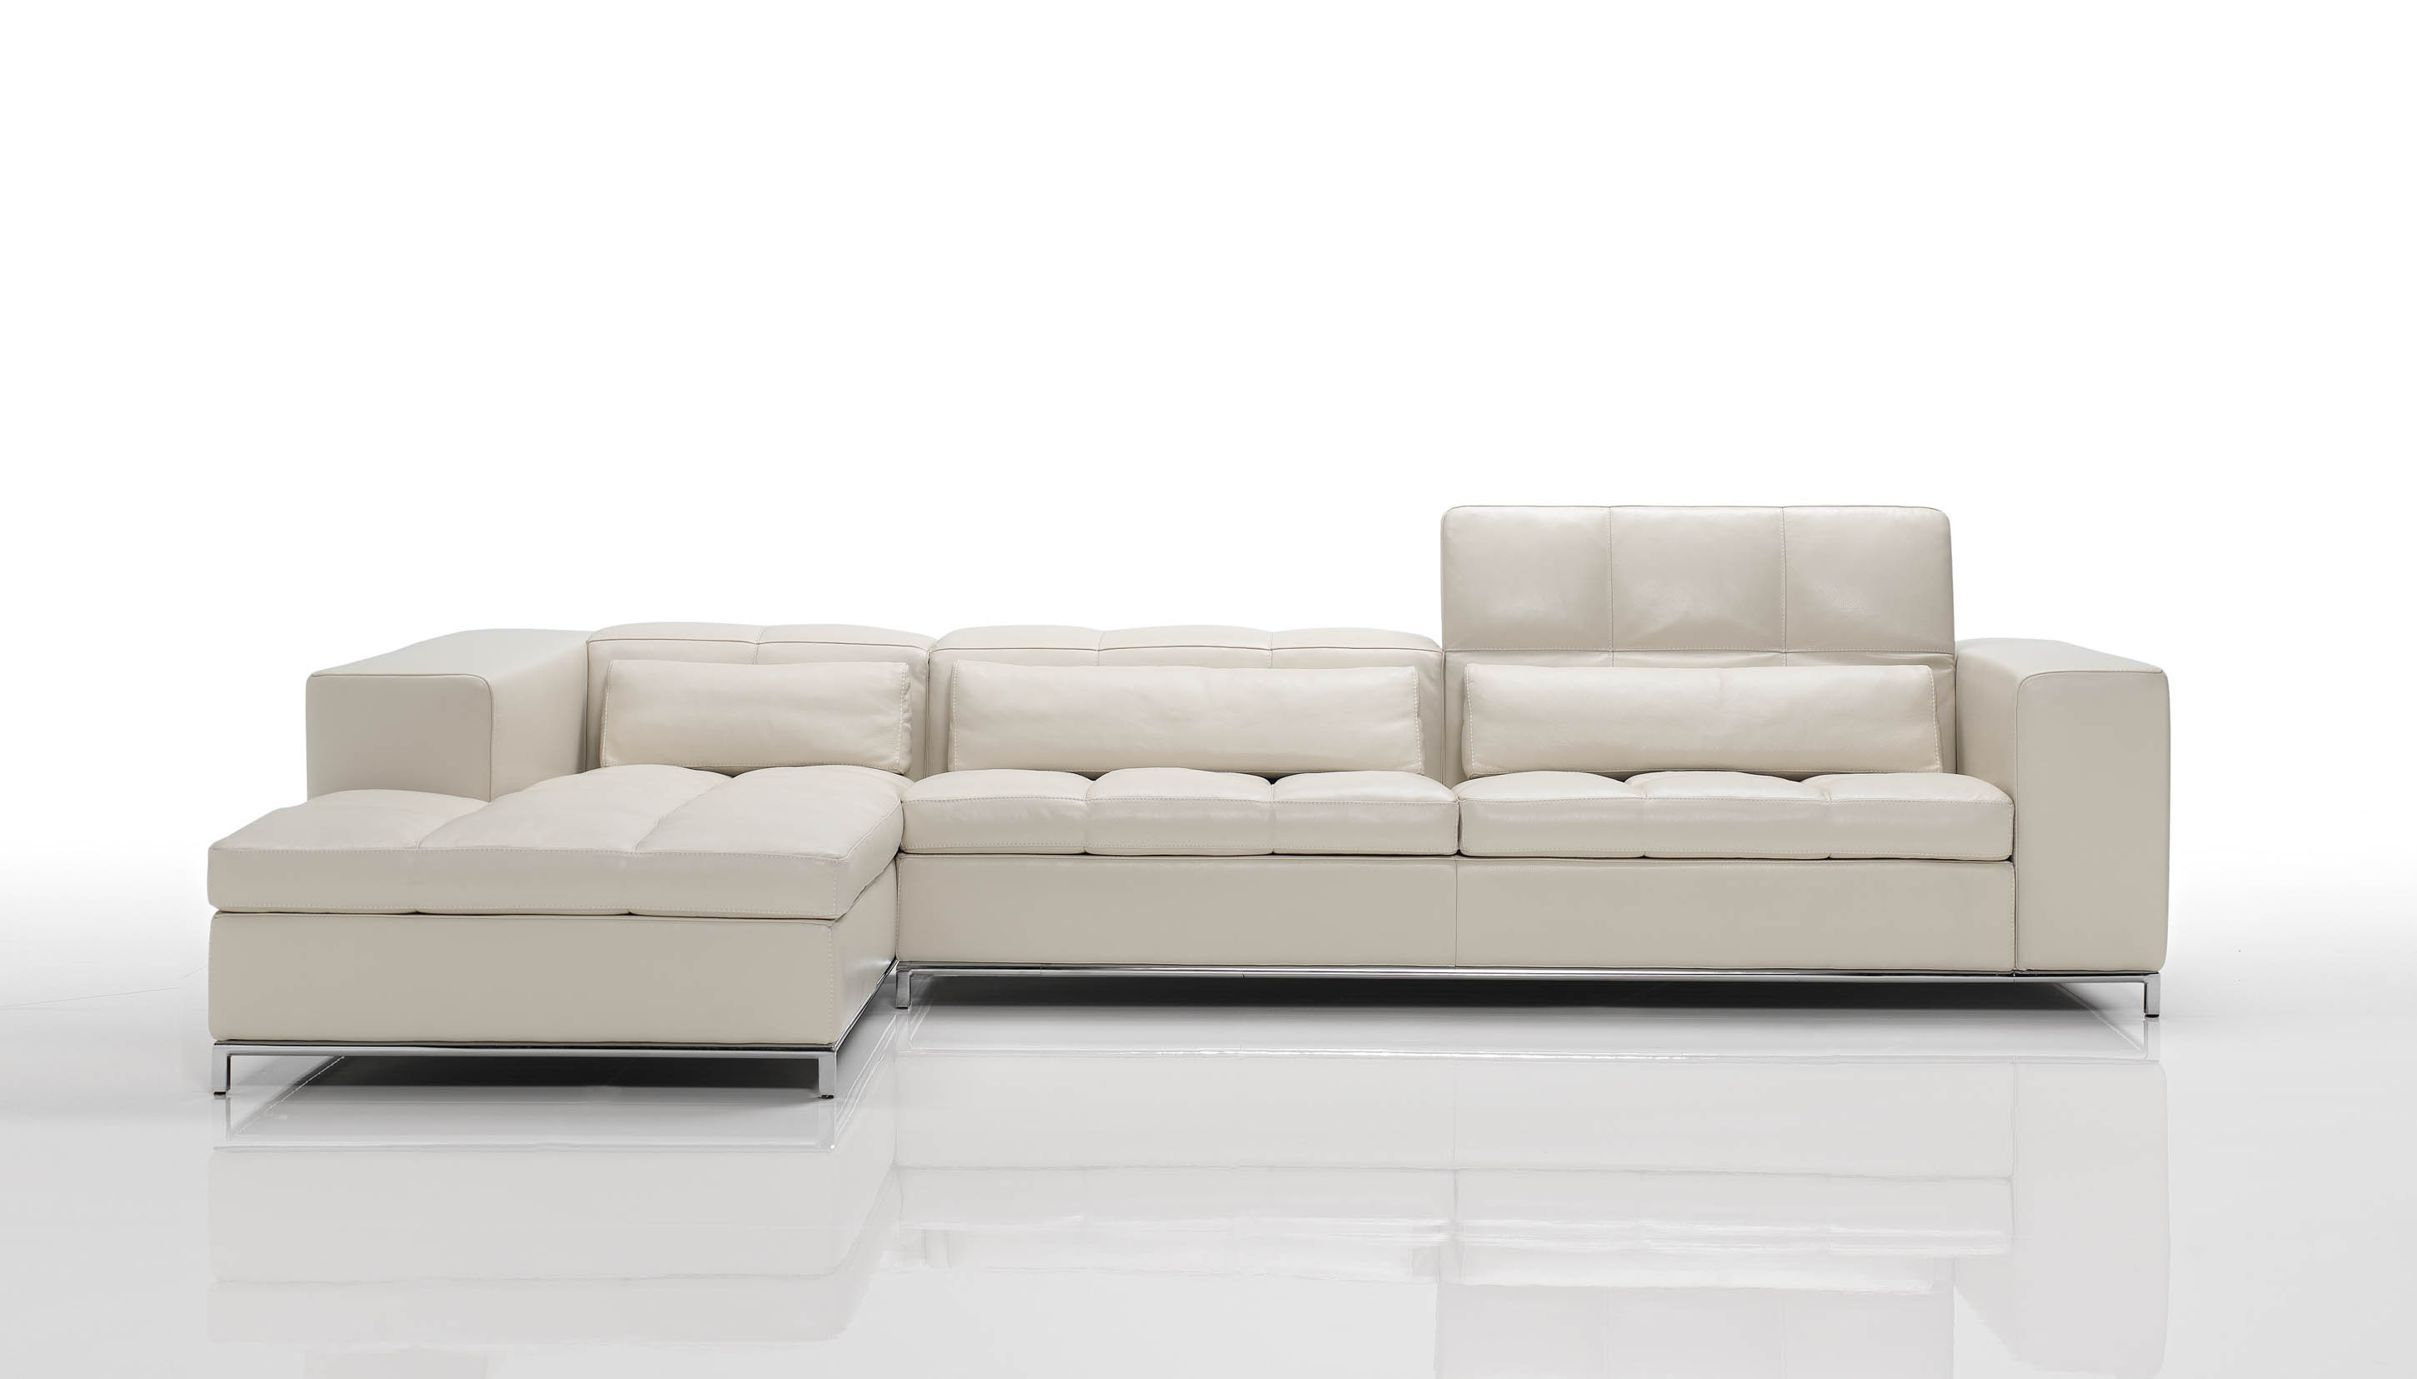 Nick Modern Luxury Sectional Sofa by Cierre Imbottiti. Designed by Stefano Conficconi.